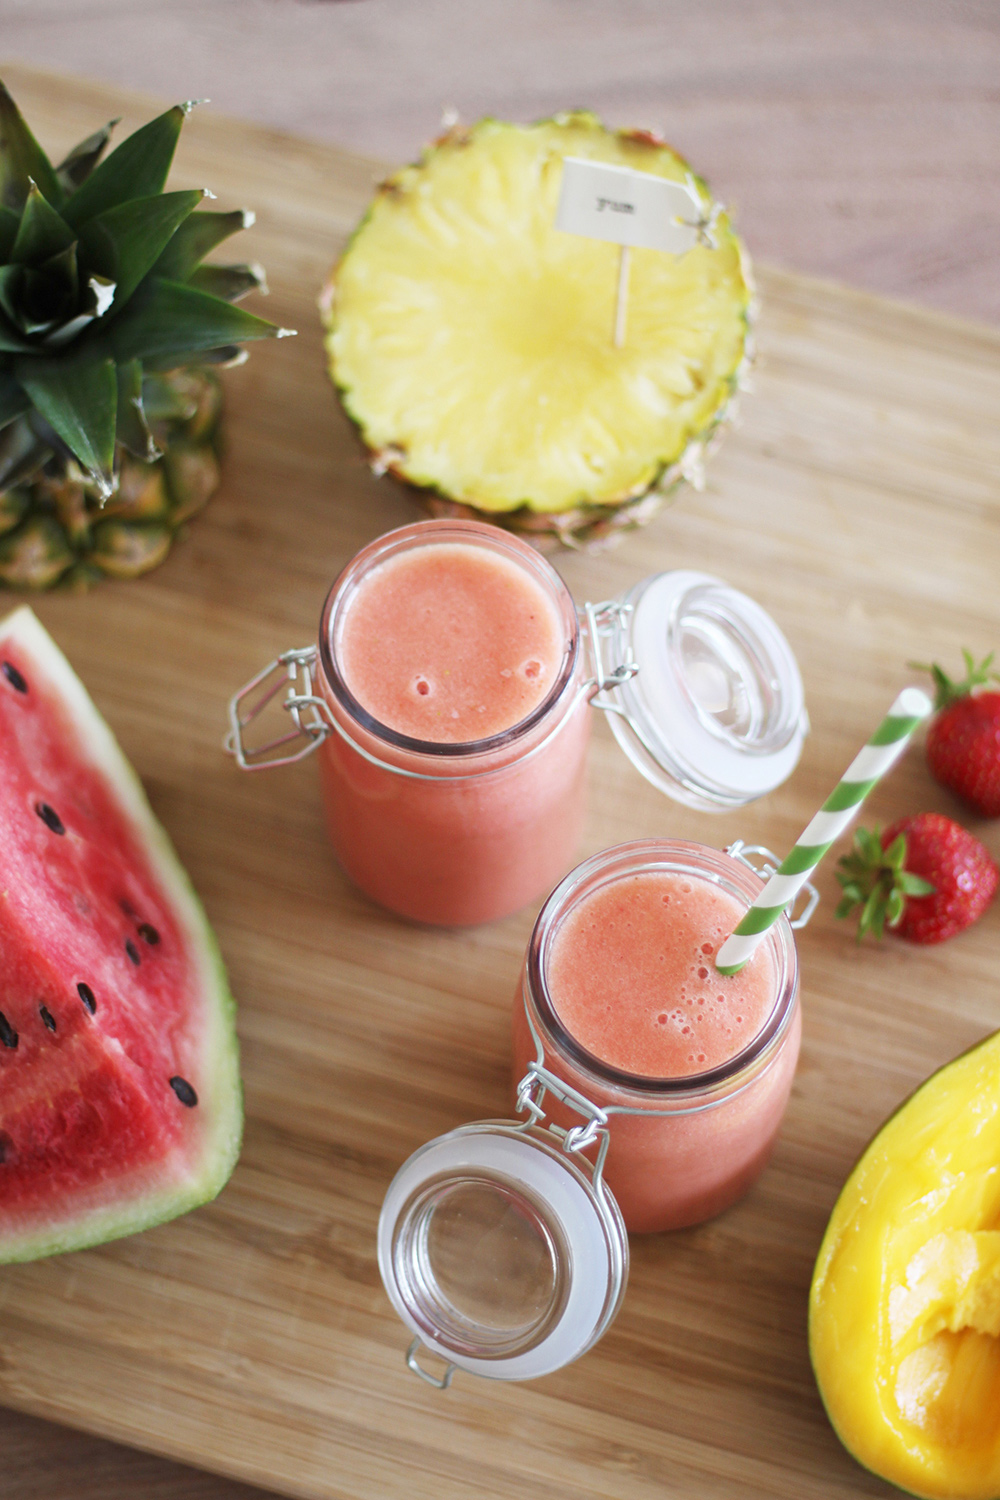 who is mocca, blog, tirol, tirolblog, innsbruck, modeblogger, foodblog österreich, smoothie rezepte, melonen smoothie, erdbeeren, ananas, fit durch 2015, snack, ananas, mango, vegetarisch